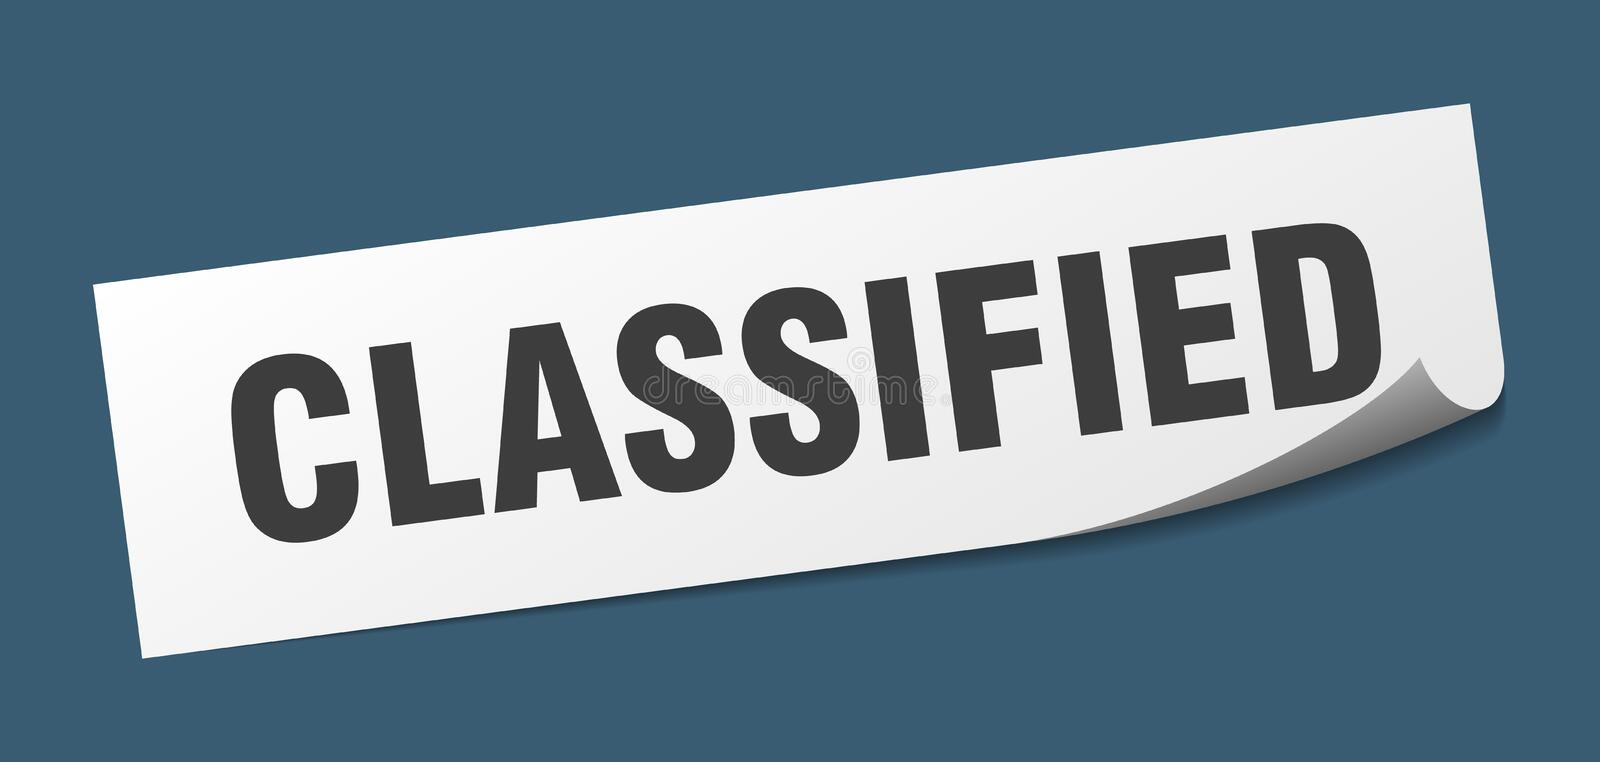 Classified sticker. Classified square sign. classified stock illustration